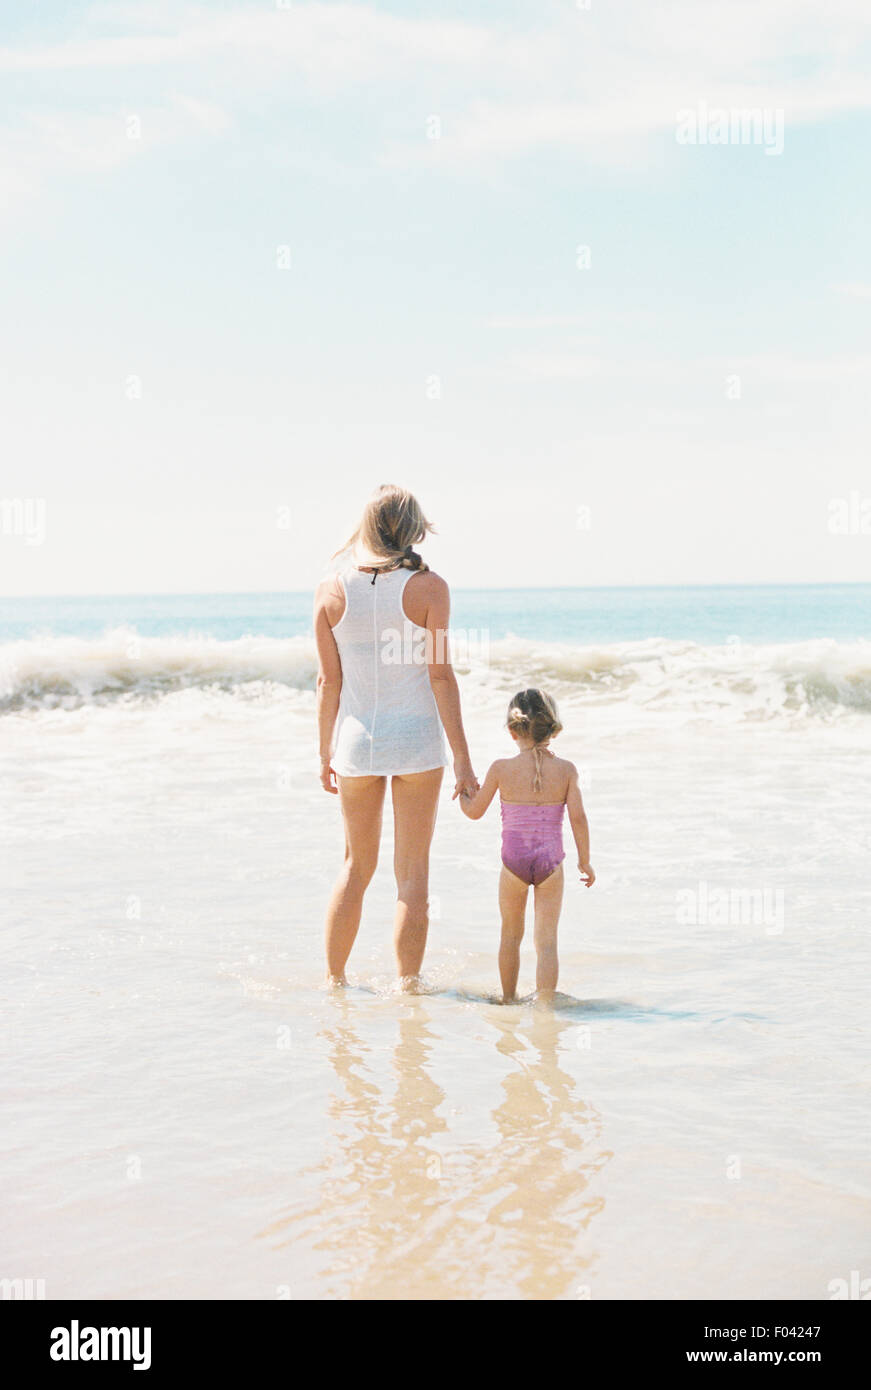 Woman standing hand in hand with her daughter on a sandy beach. - Stock Image